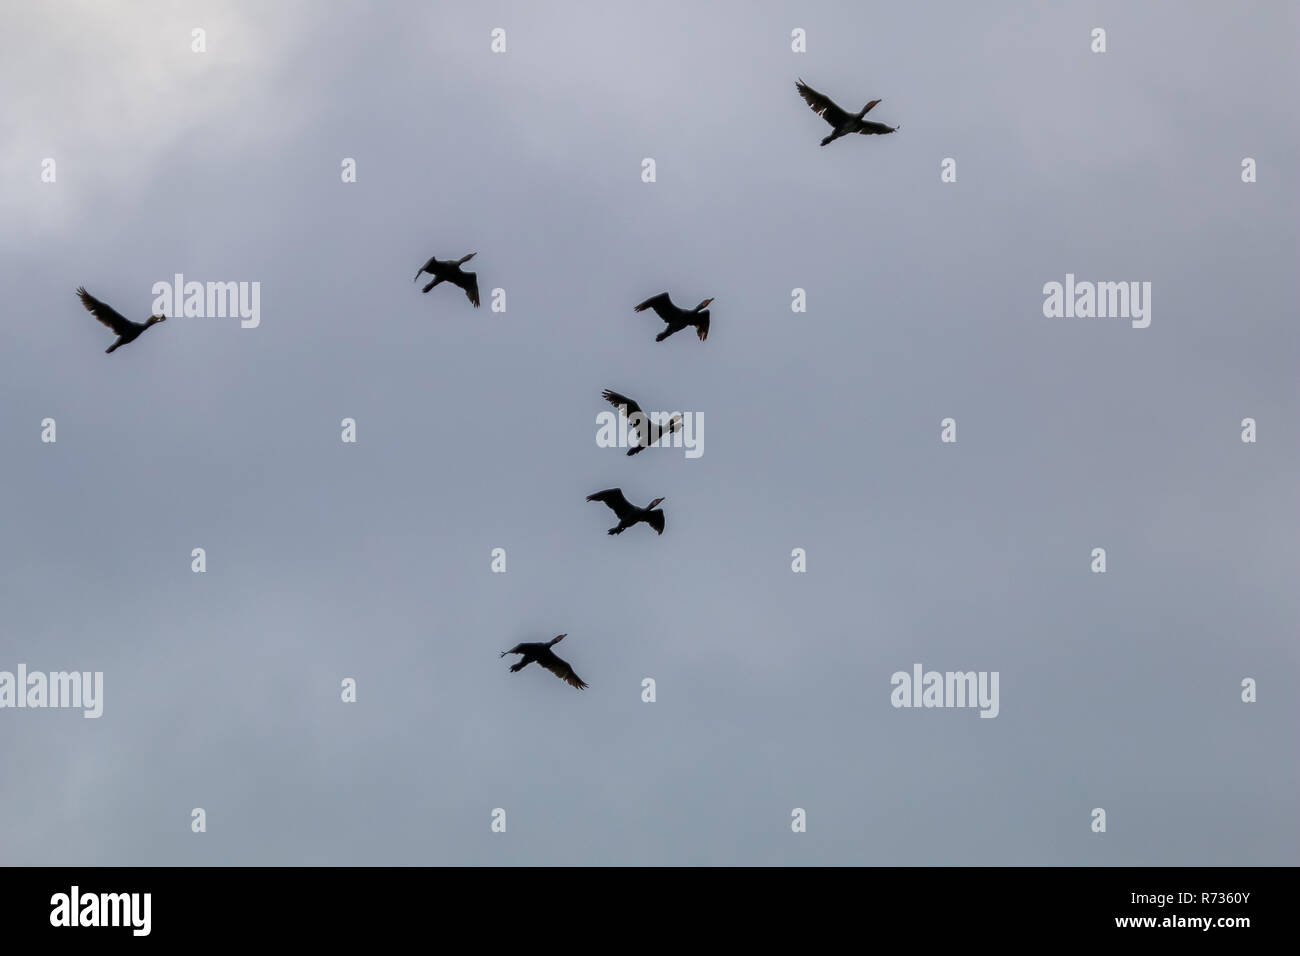 Flock of migratory birds flying in the blue sky. Ducks migrating and flying at a V shape formation. Ducks migrate from latvia to south in autumn seaso - Stock Image